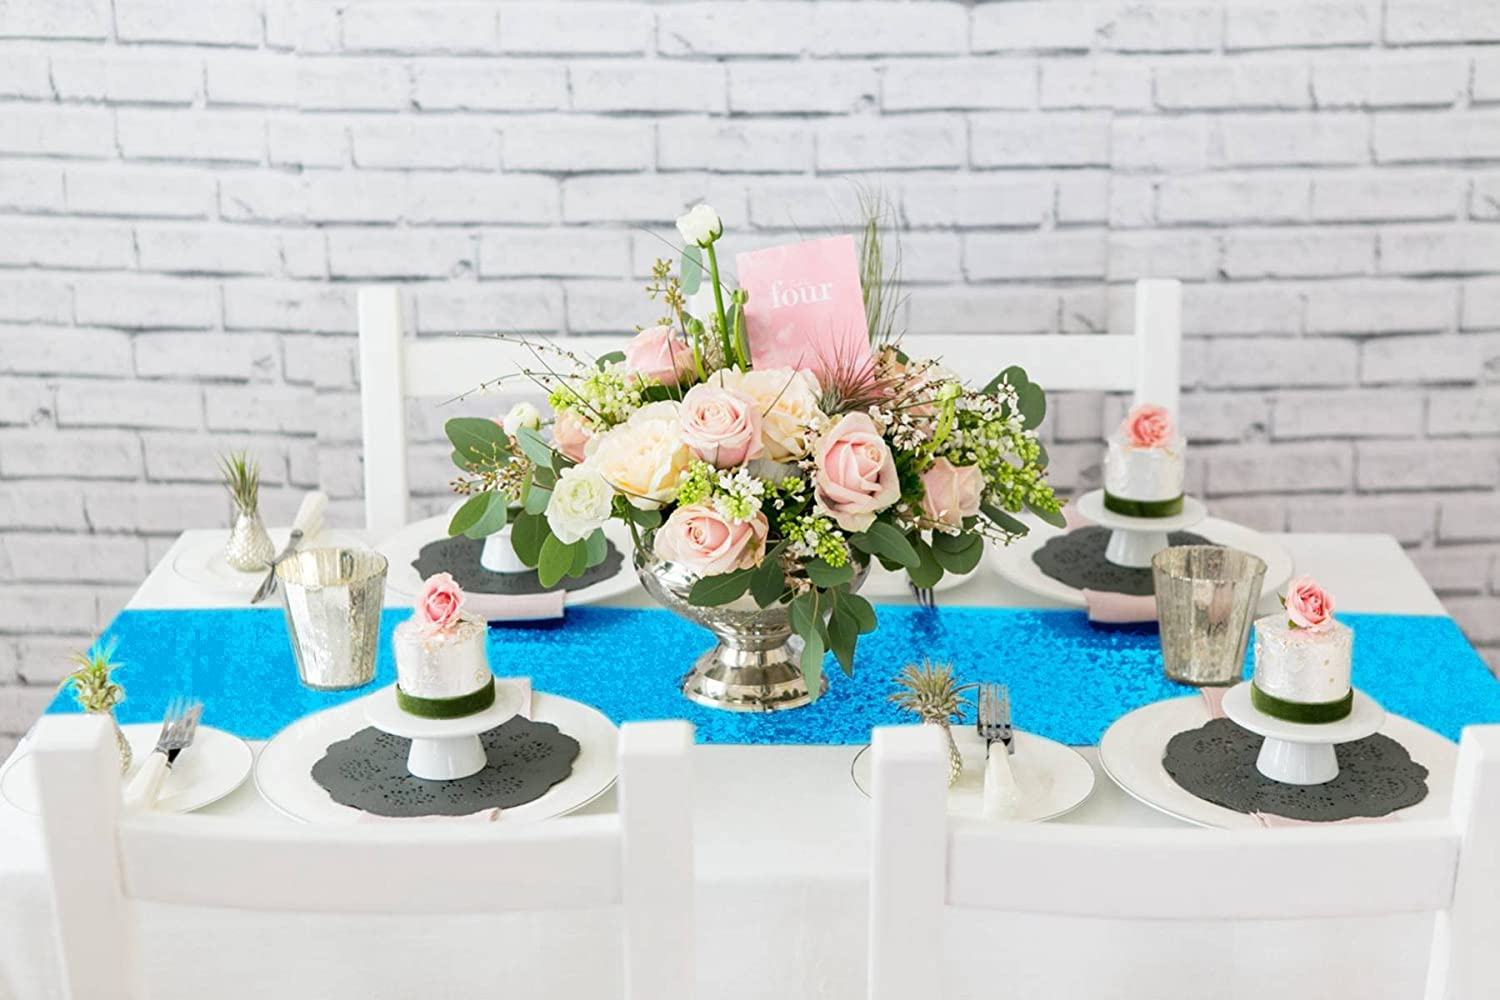 ShinyBeauty Sparkly Turquoise Sequin Table Runner For Wedding/Events Decoration 30 * 180cm Wedding Decorations (Can Choose Your Color): Amazon.co.uk: ...